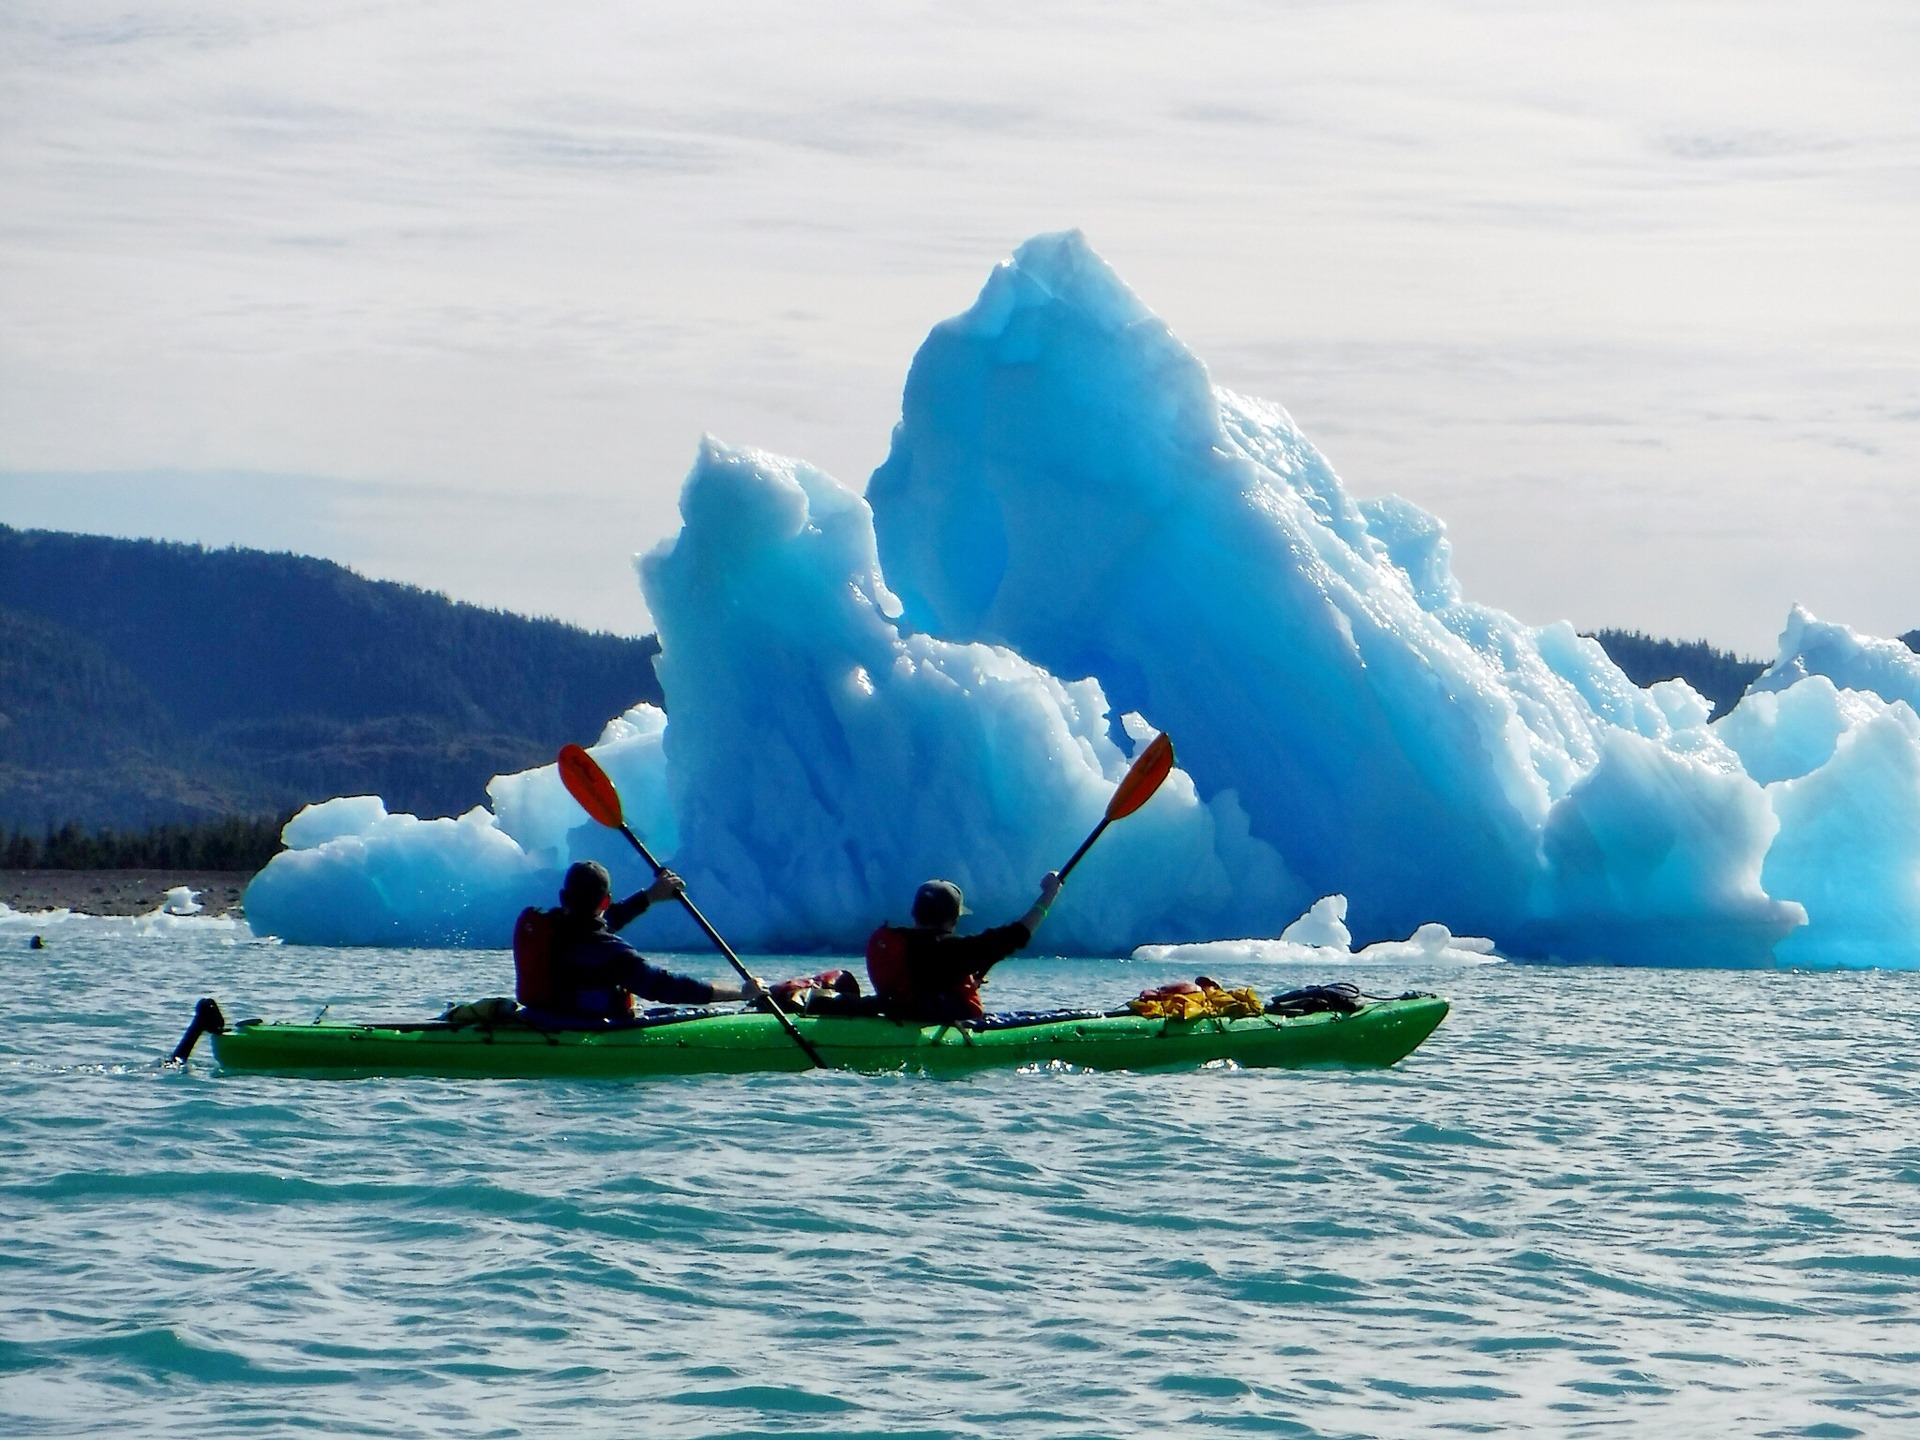 Sea kayaking amongst glacial icebergs in Prince William Sound